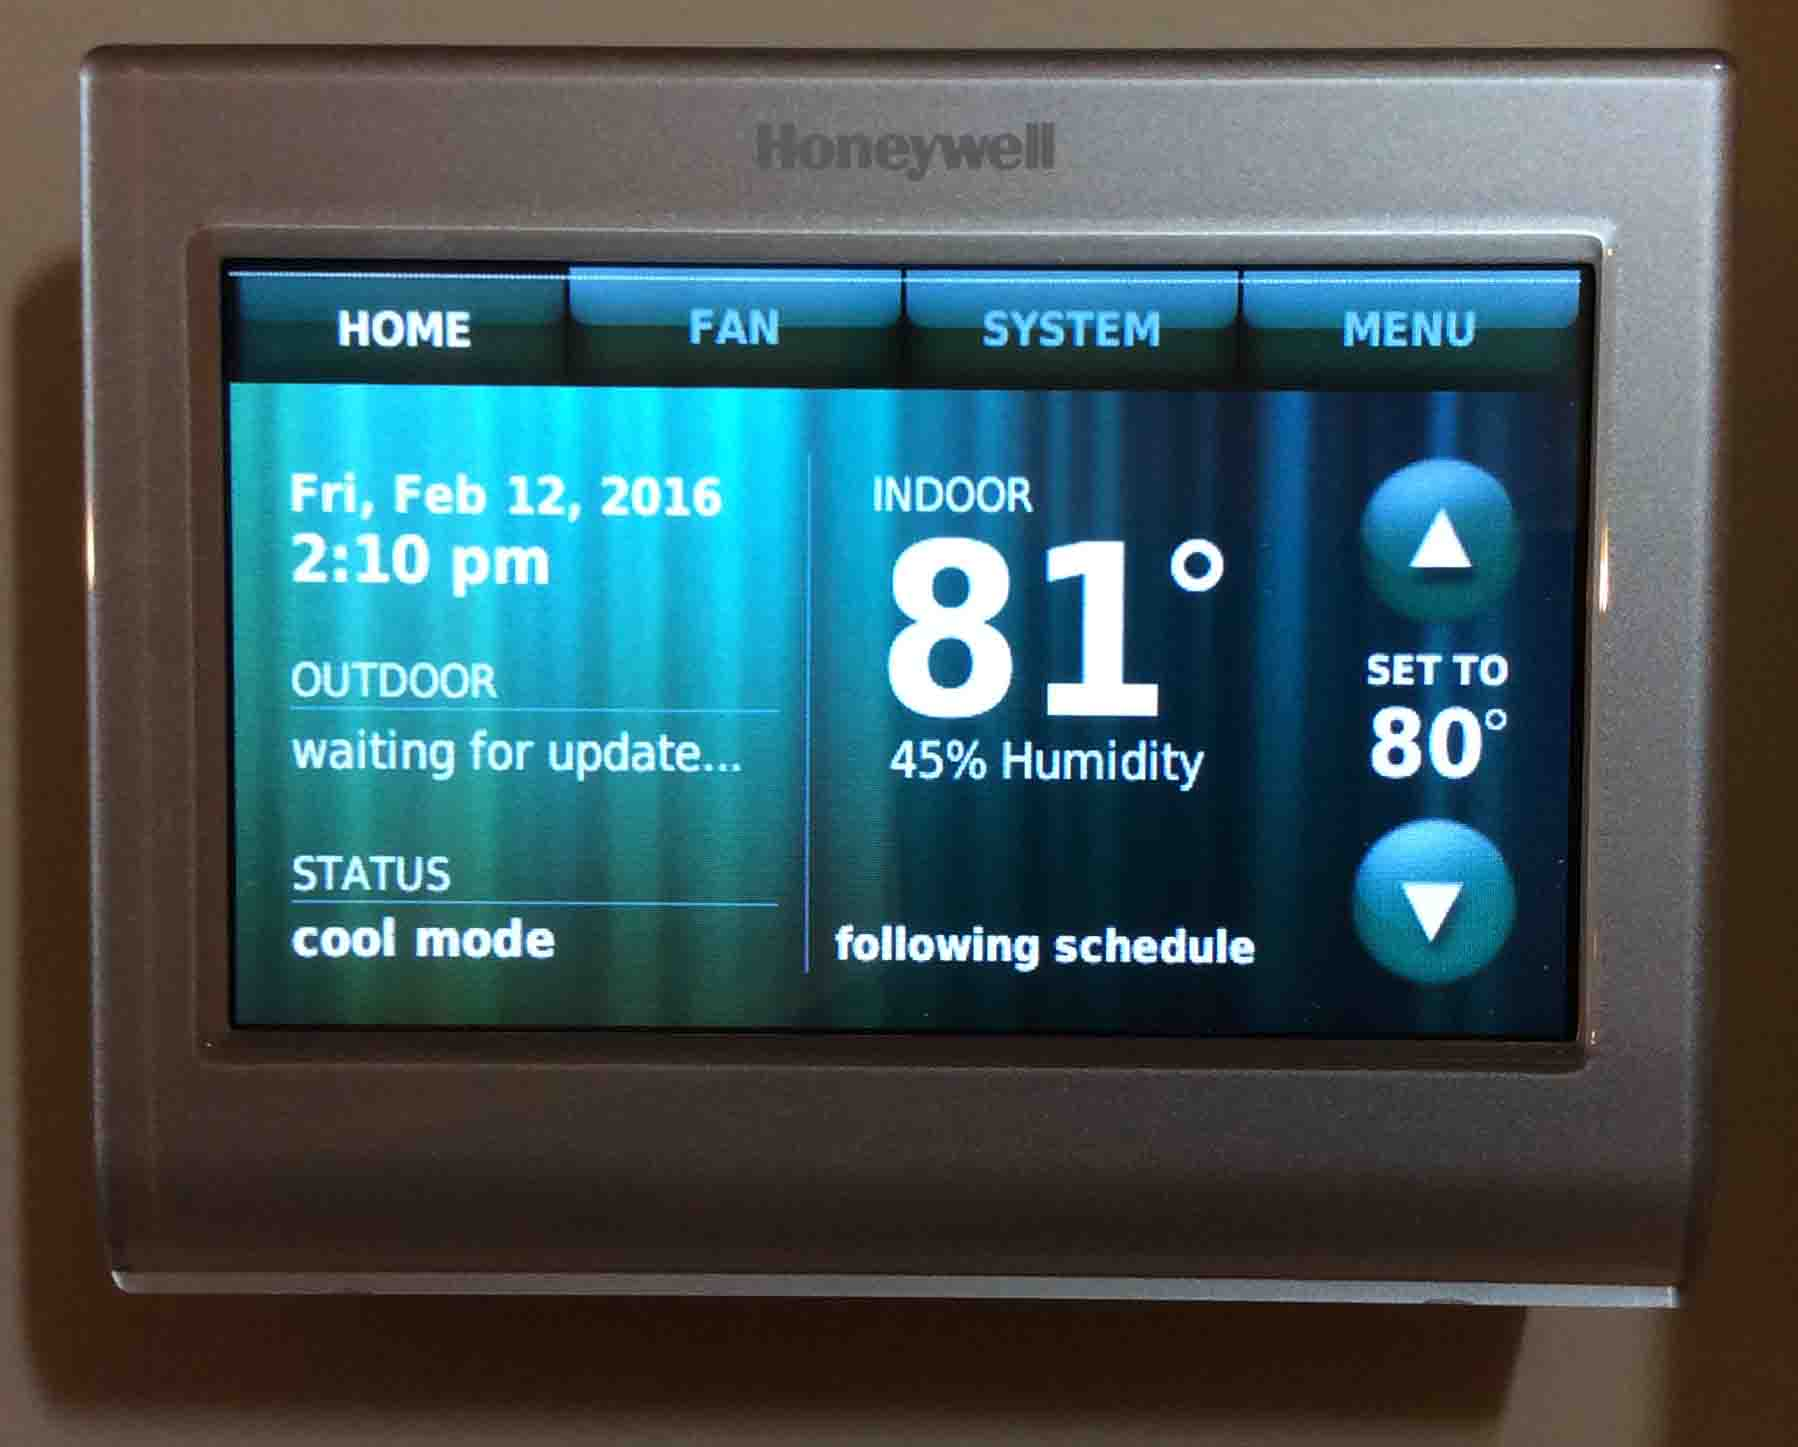 Reconnecting Honeywell Thermostat Rth9580wf To Wifi